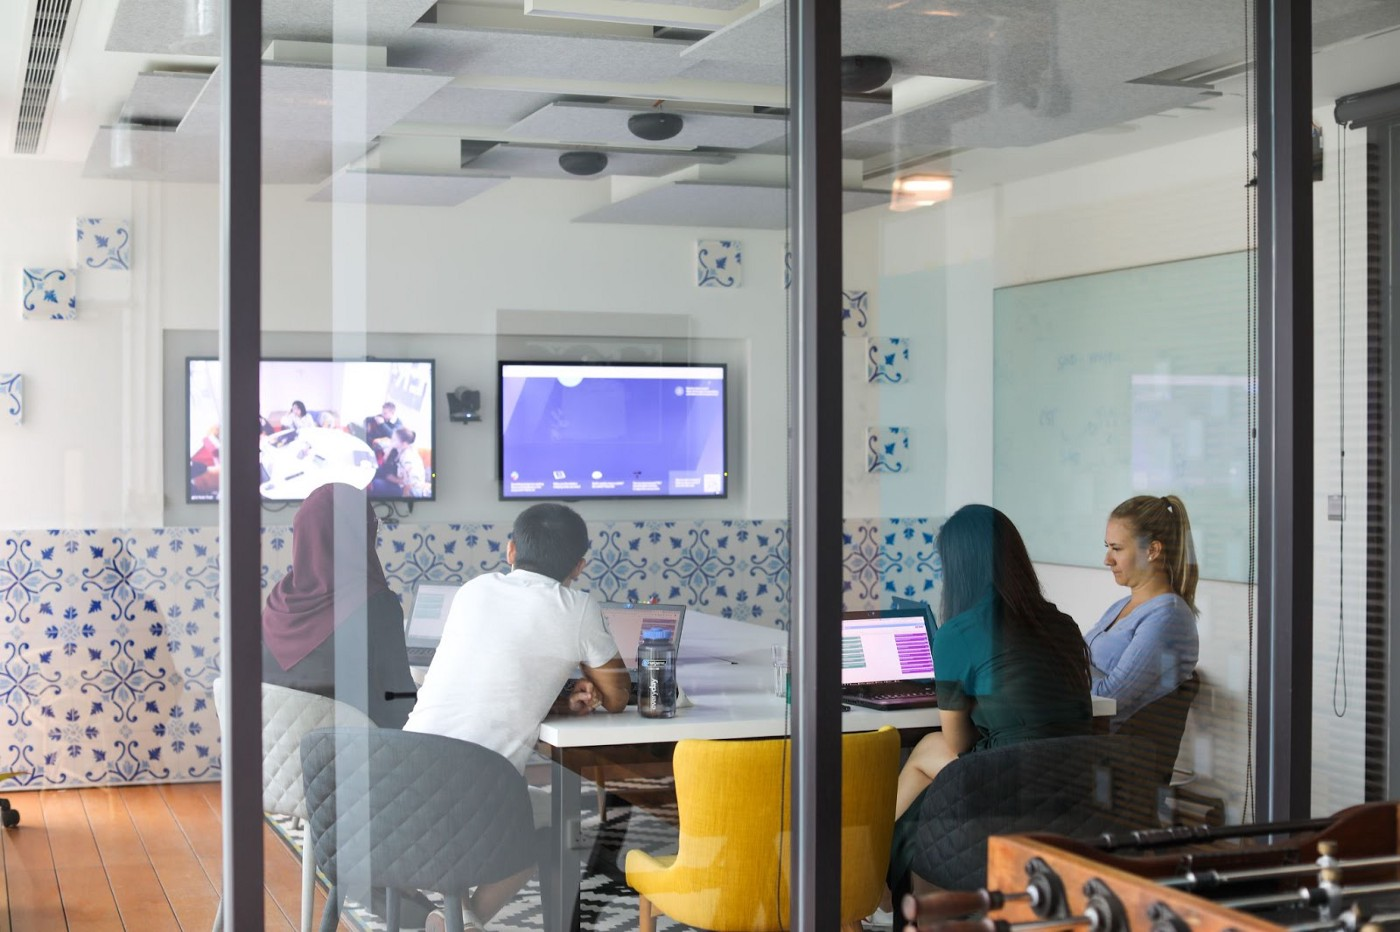 Picture of people inside a meeting room